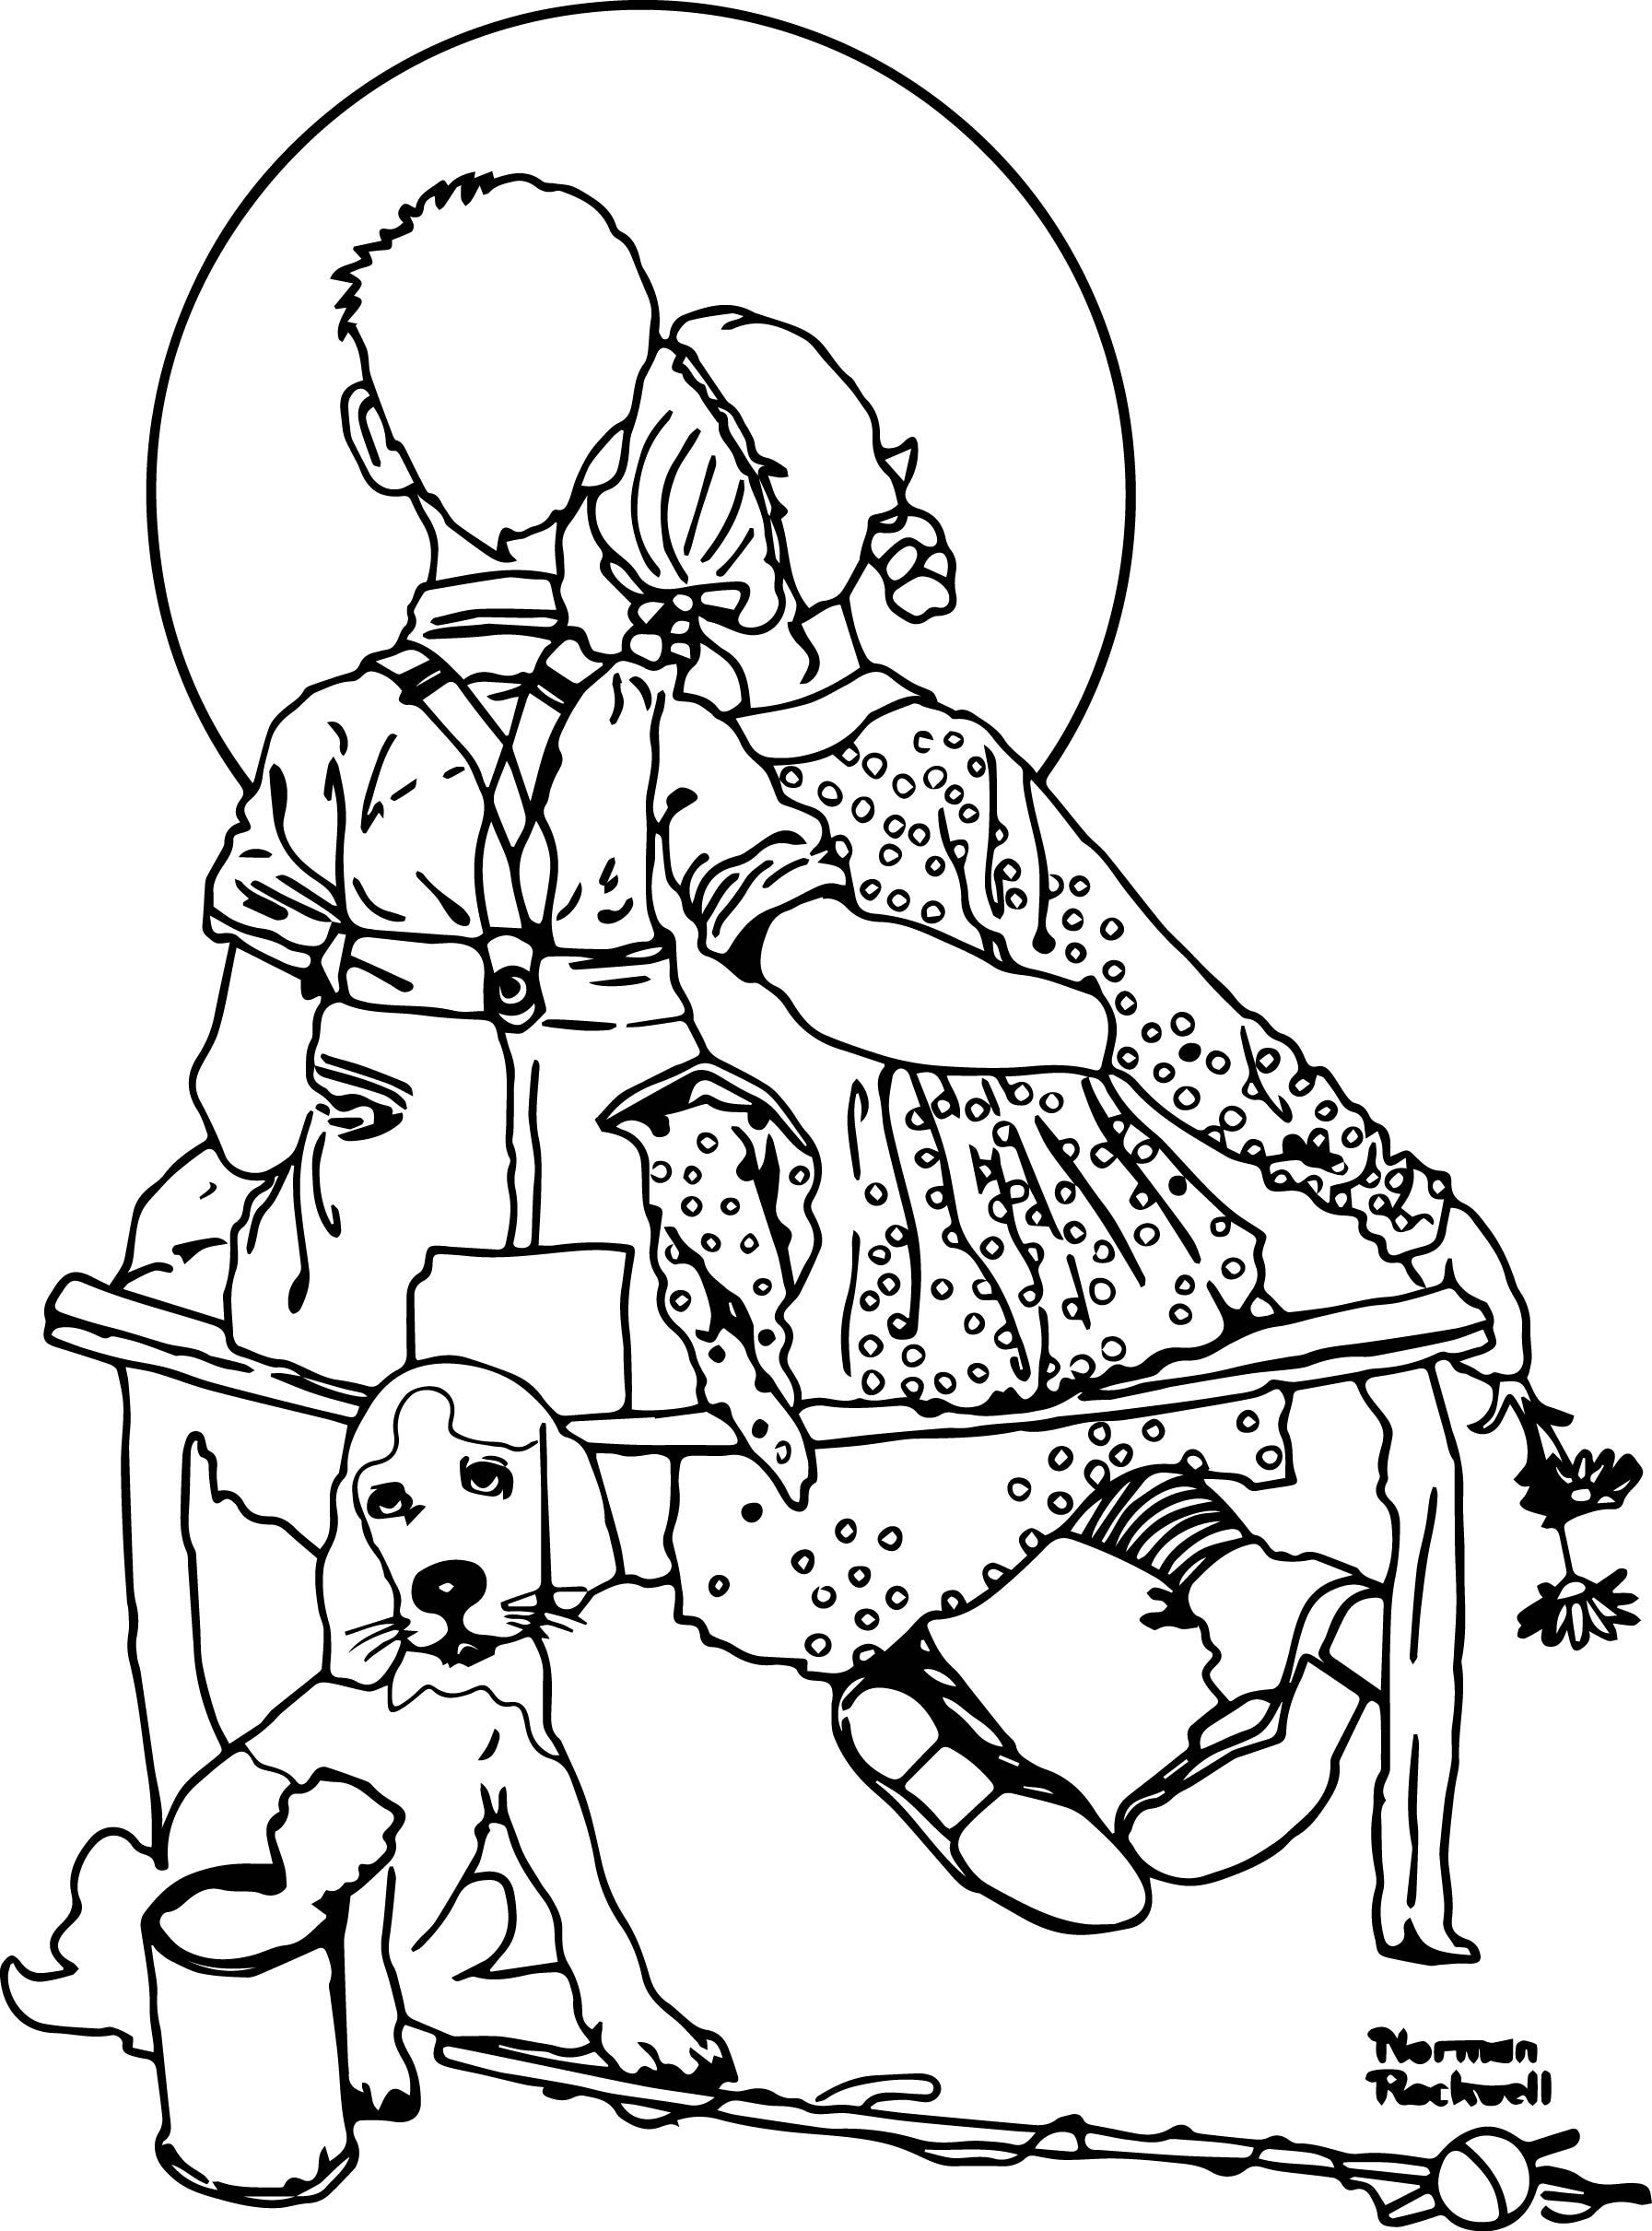 norman rockwell coloring pages - photo#7